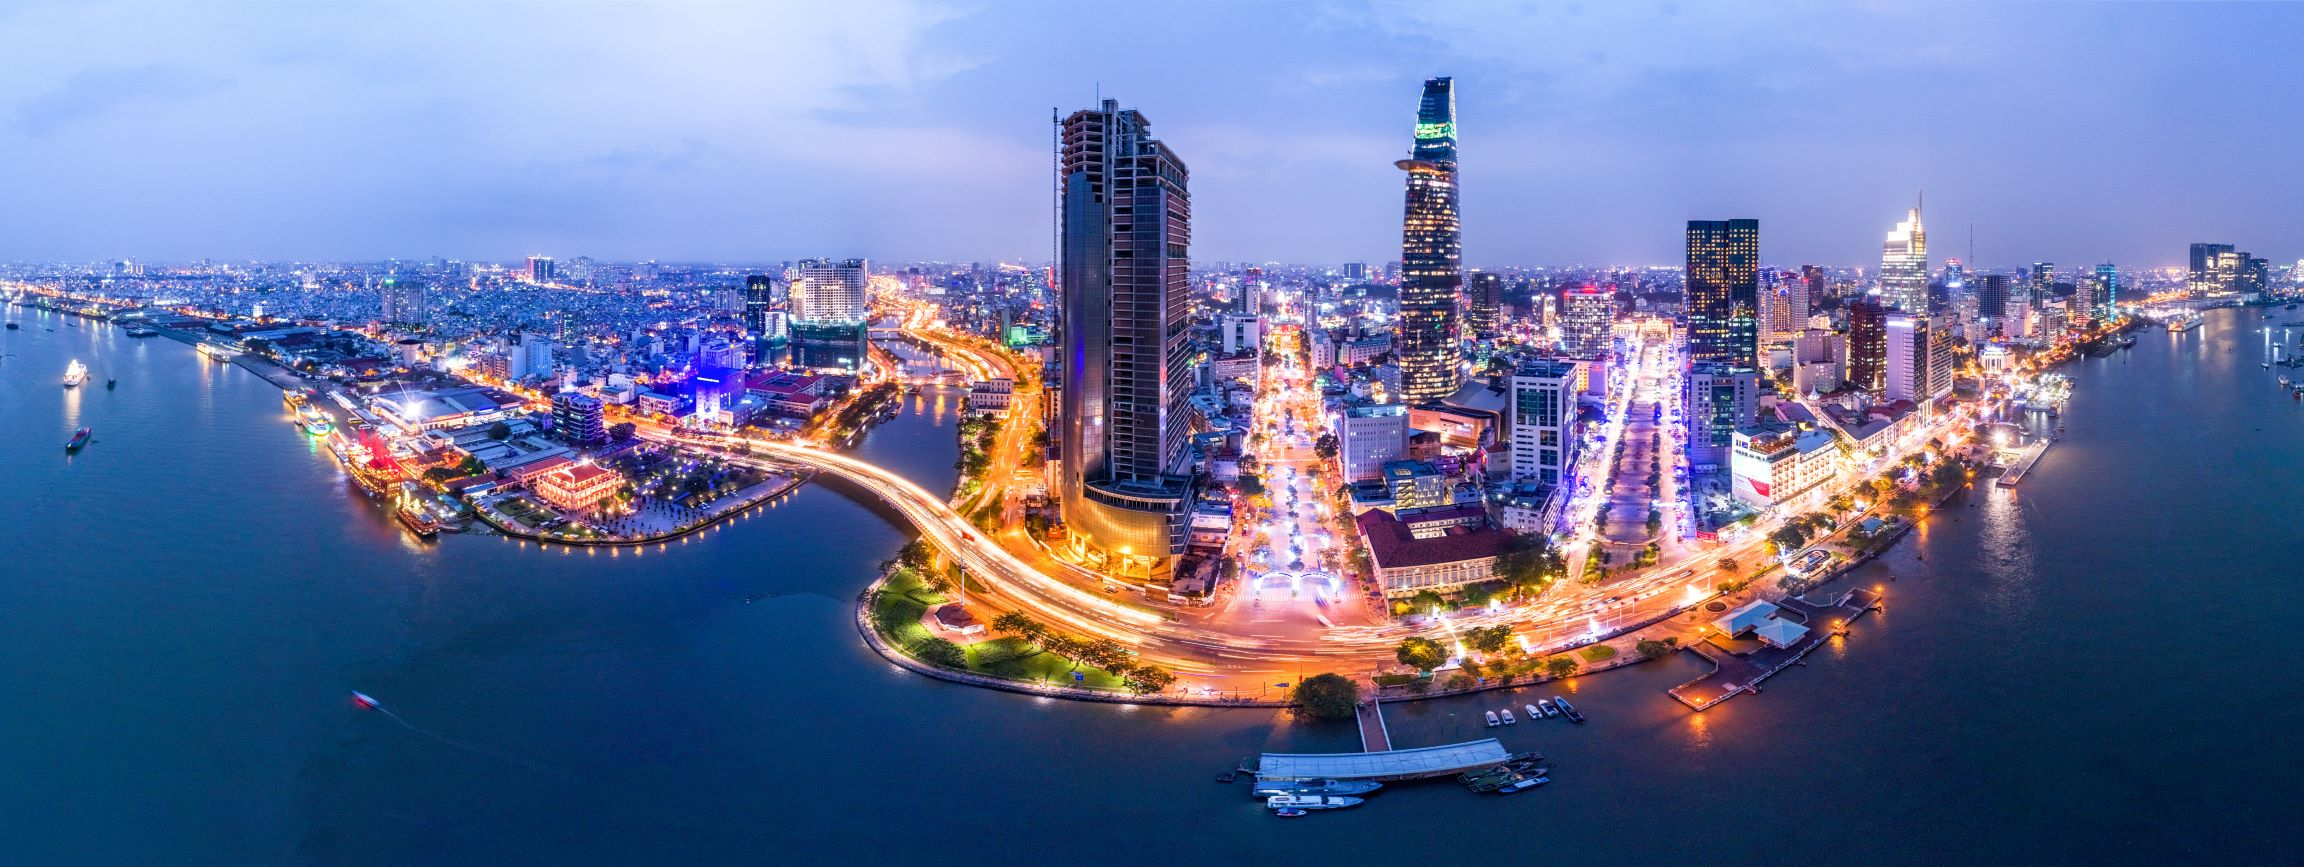 panoramic image of Ho Chi Minh City